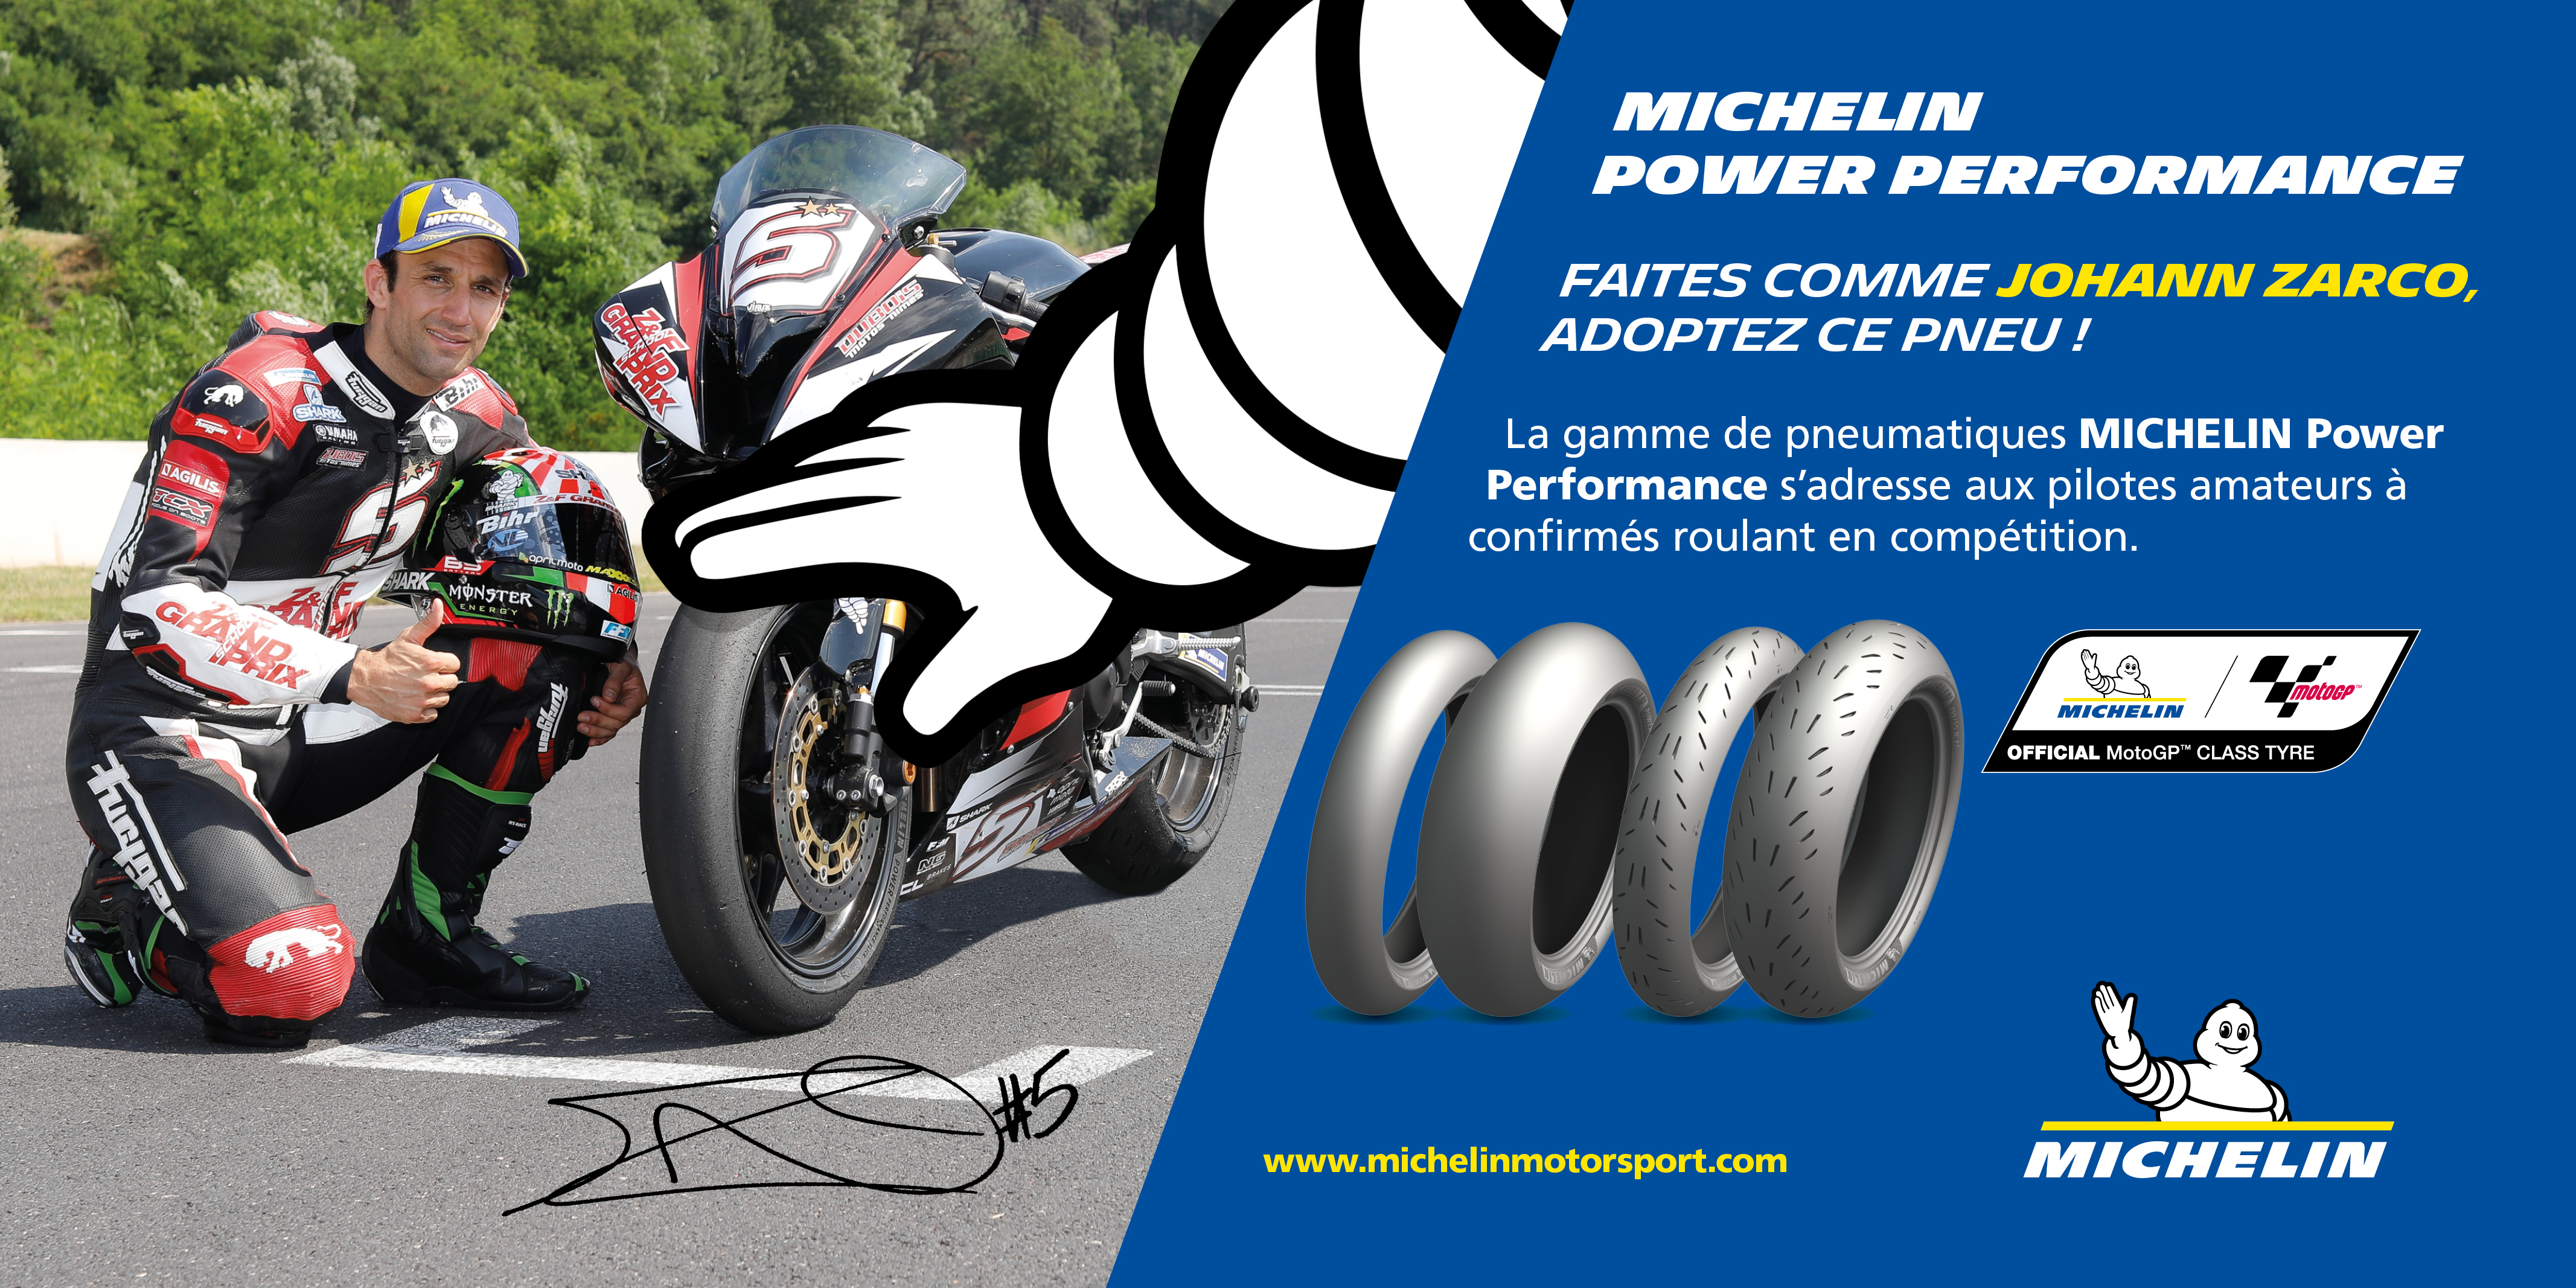 MICHELIN_PowerPerformance_Zarco_Tw_FR